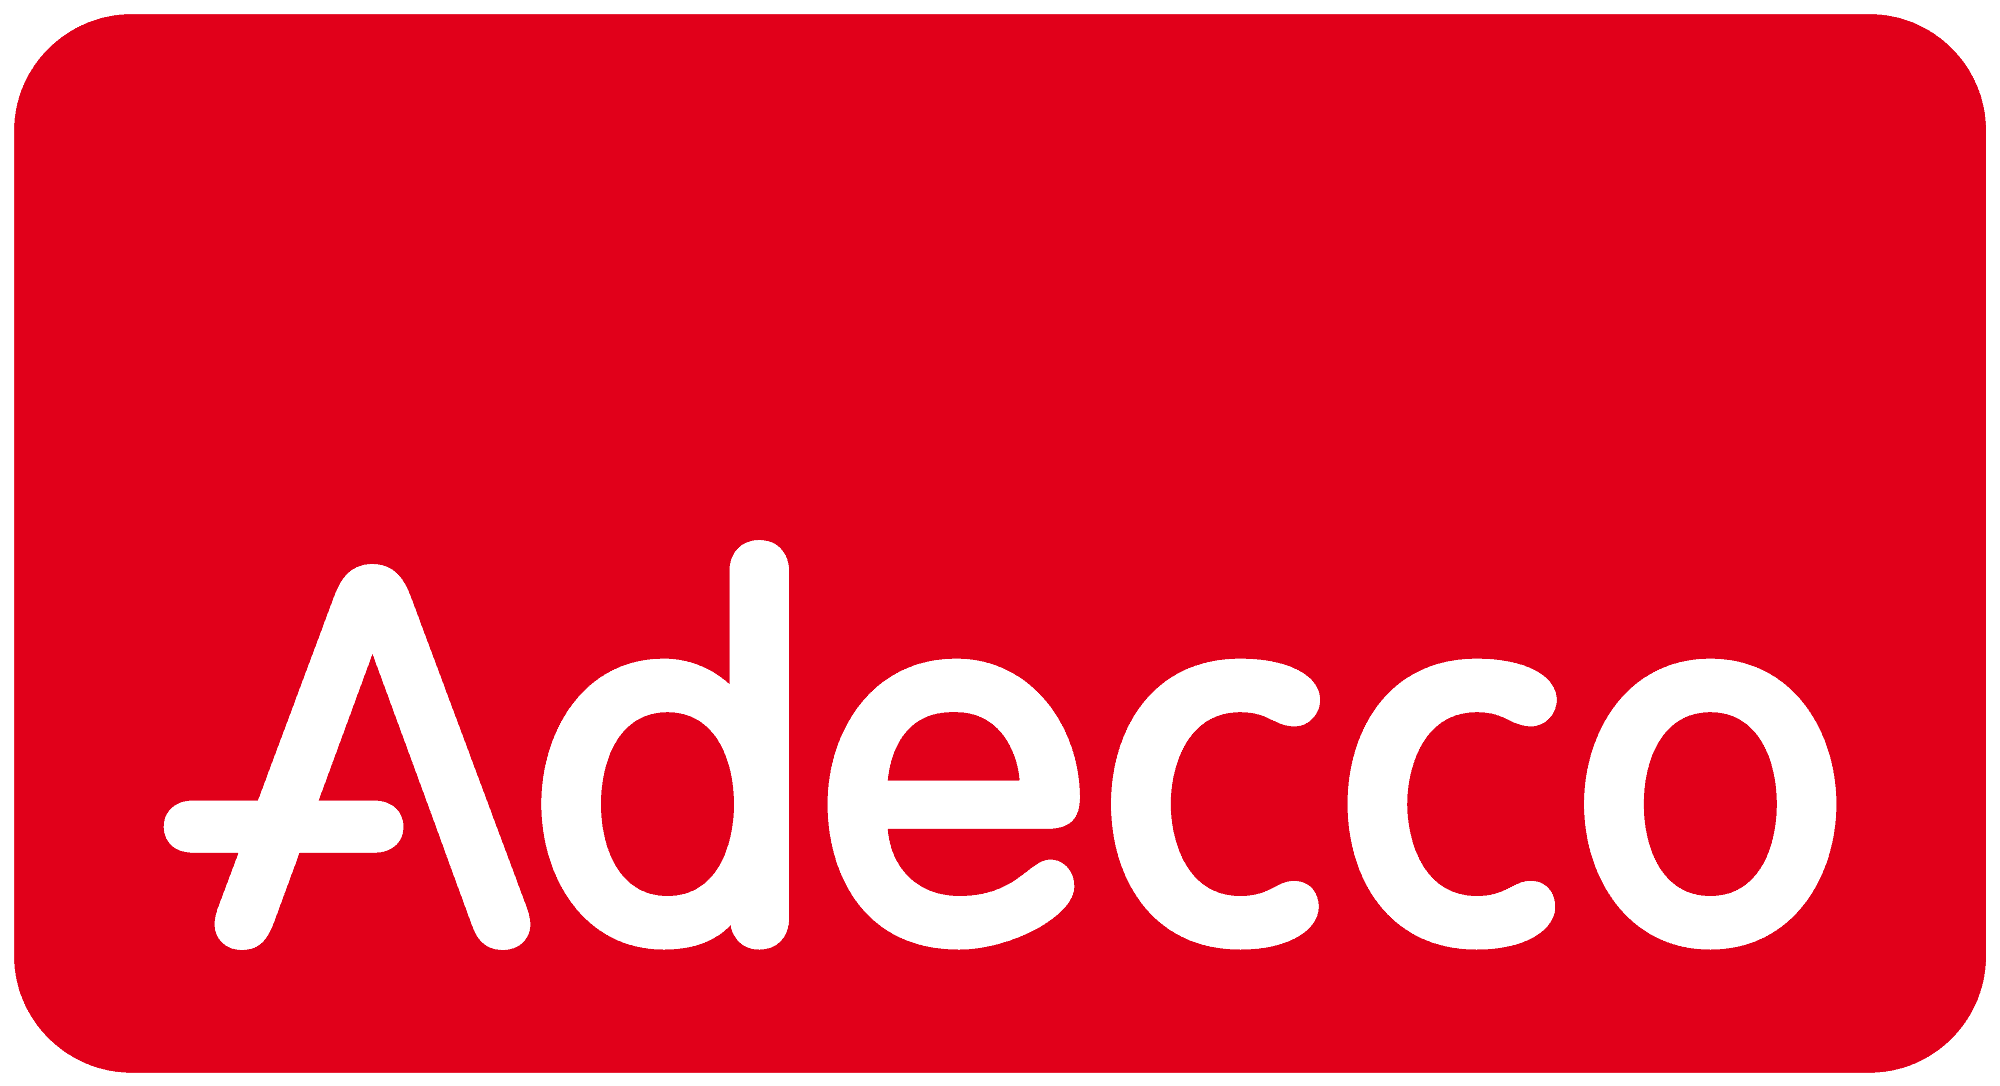 Marketing mix of Adecco